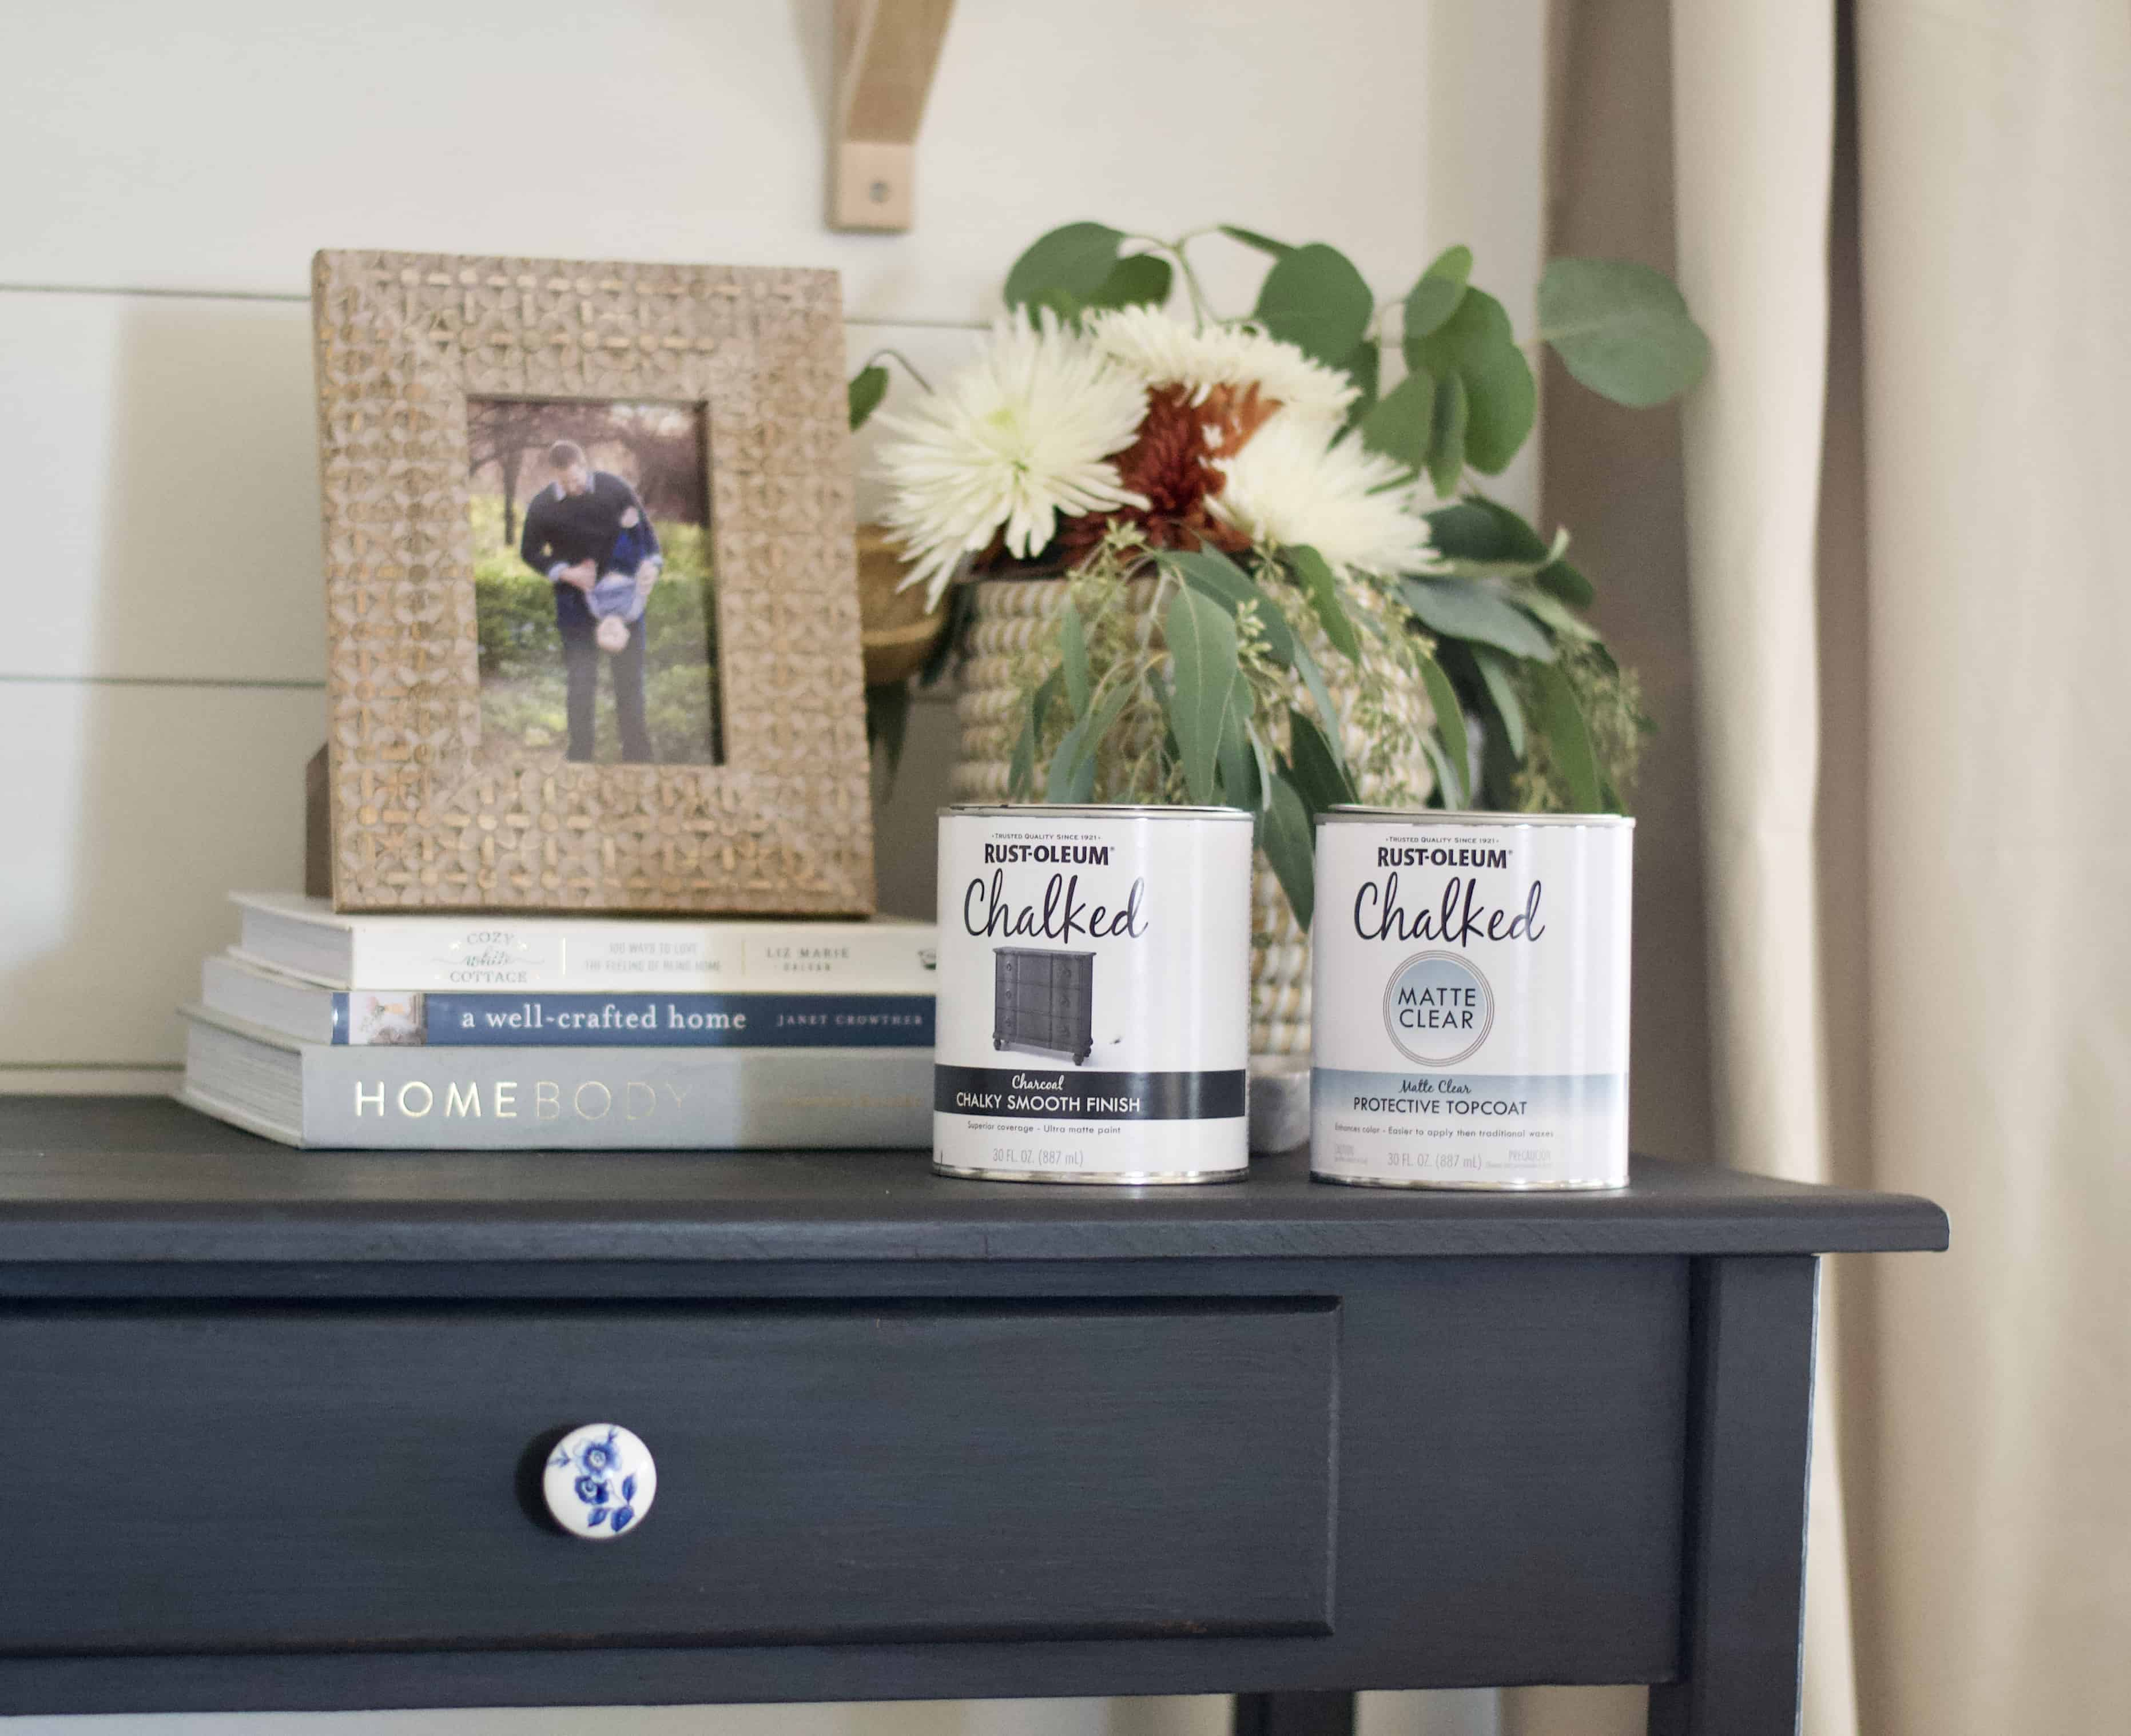 how to use Rustoleum chalk paint and topcoat